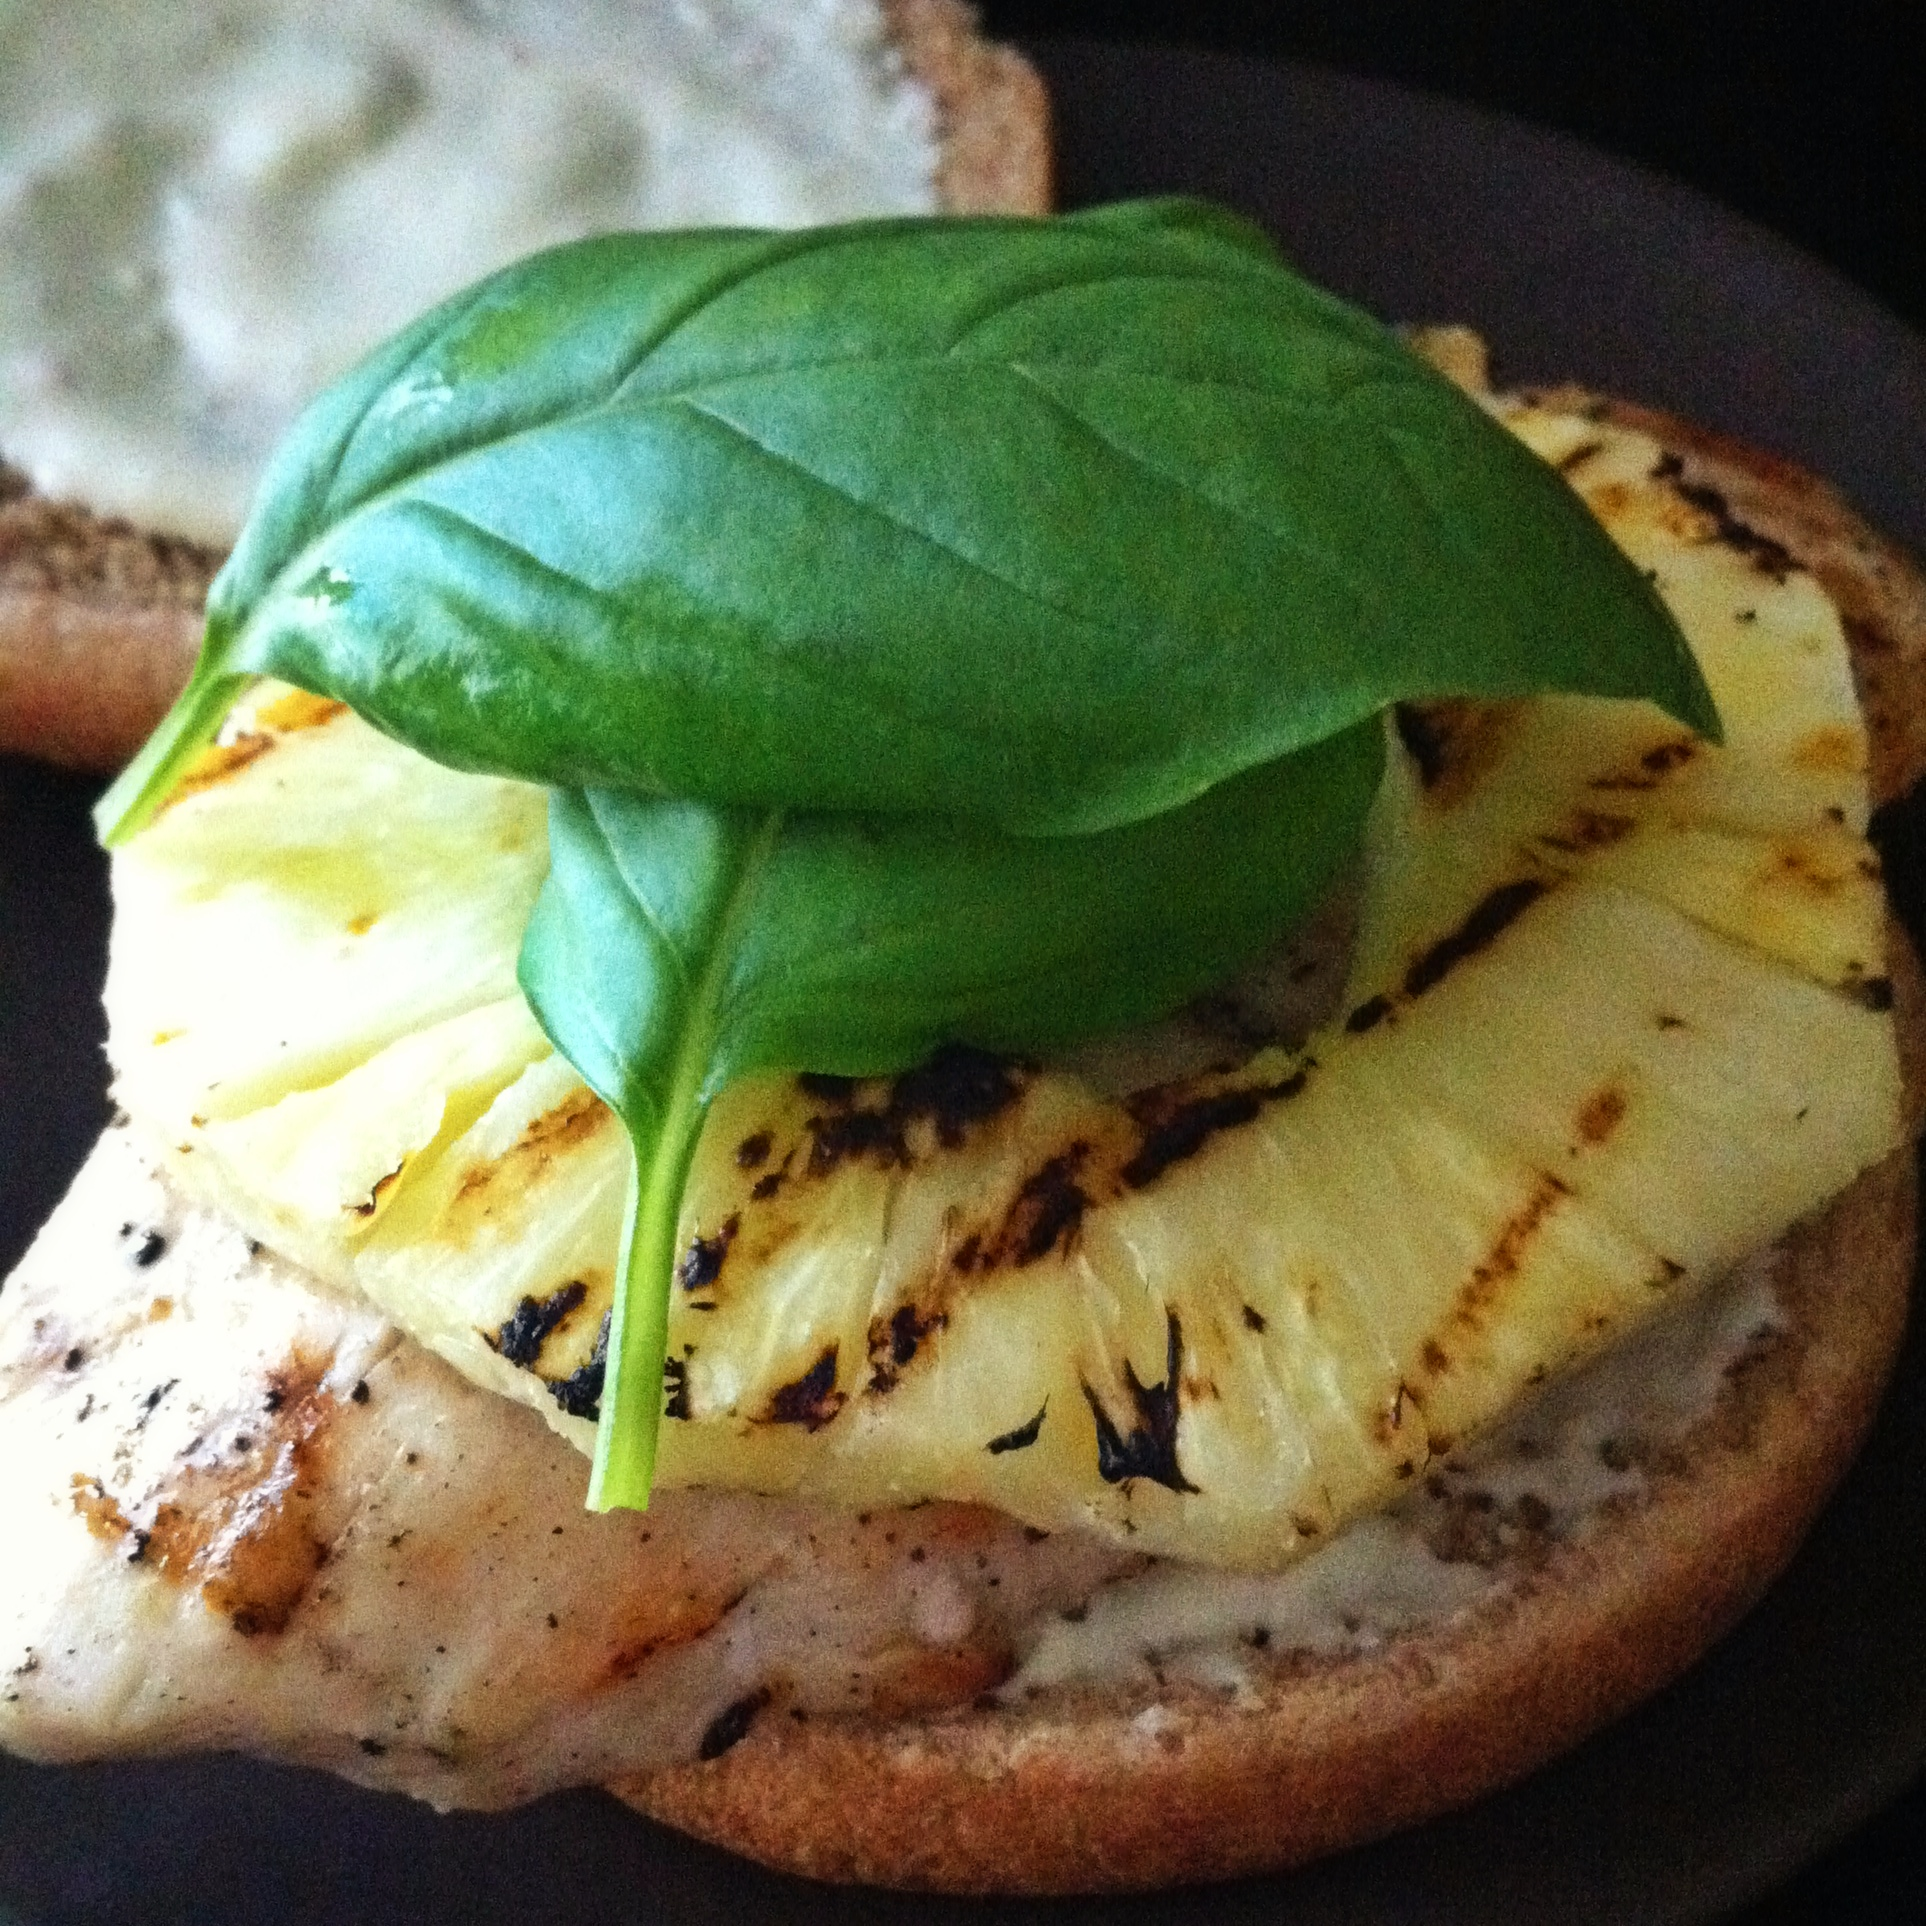 grilled chicken and pineapple sandwiches with wasabi mayo